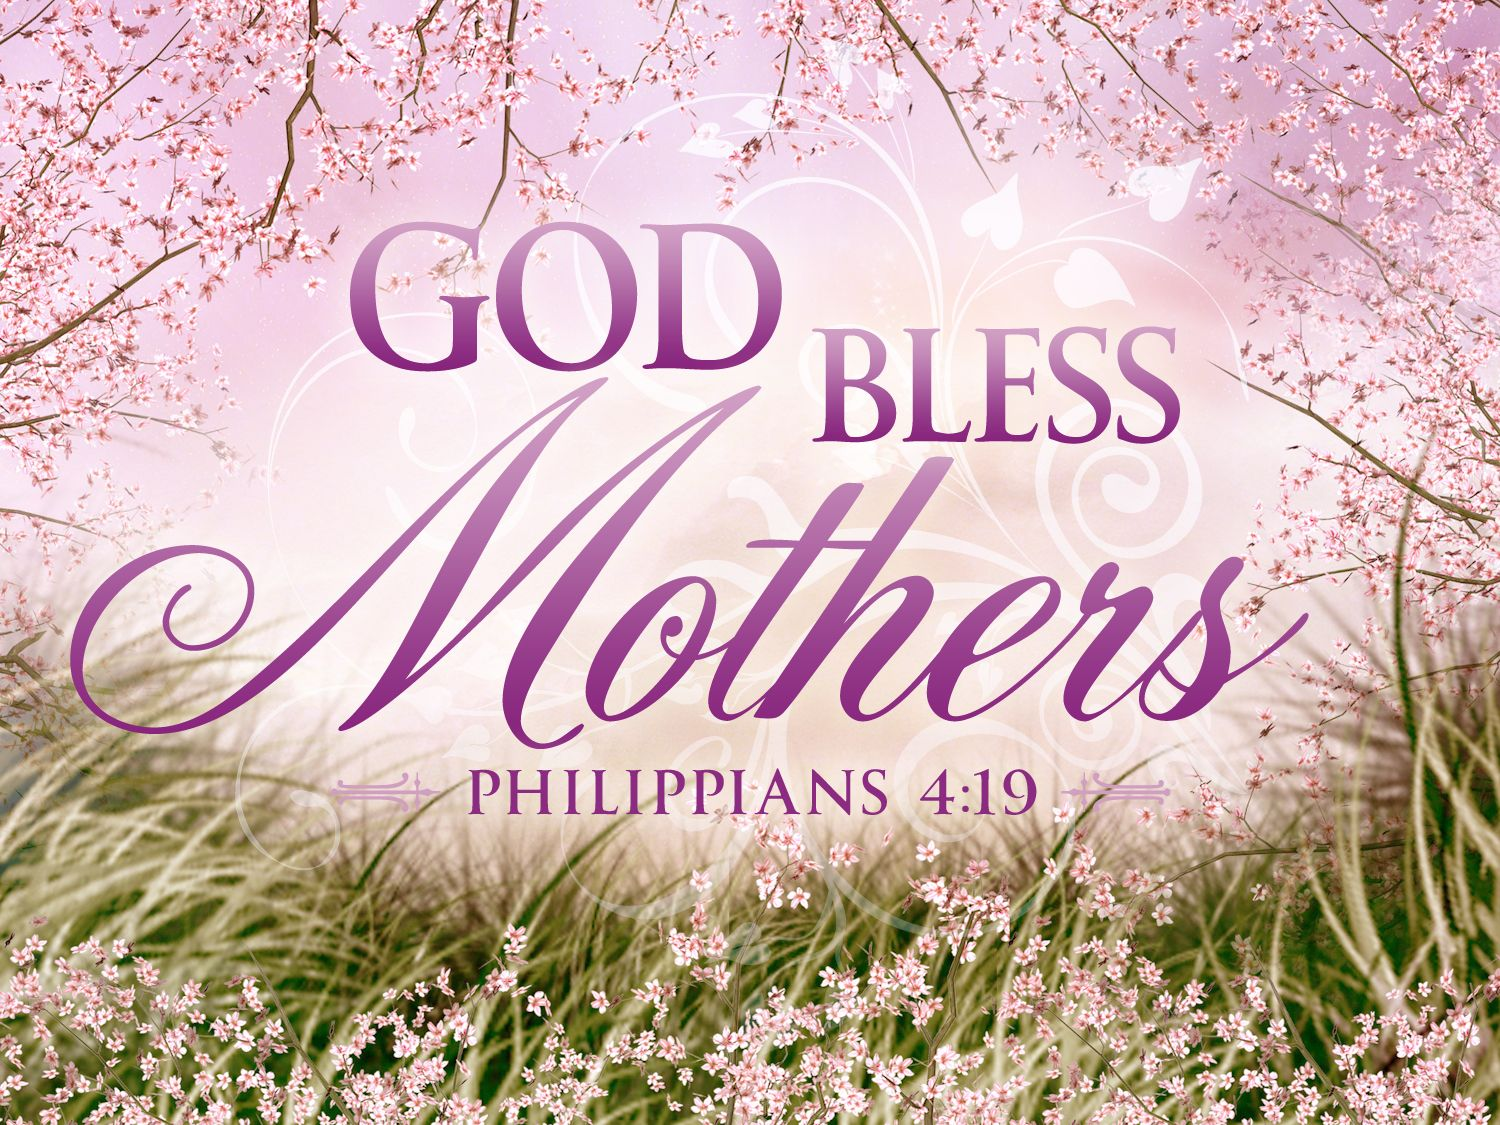 Happy mothers day pictures images for heavens sake fr god bless mothers send your own free mothers day greeting click now kristyandbryce Choice Image